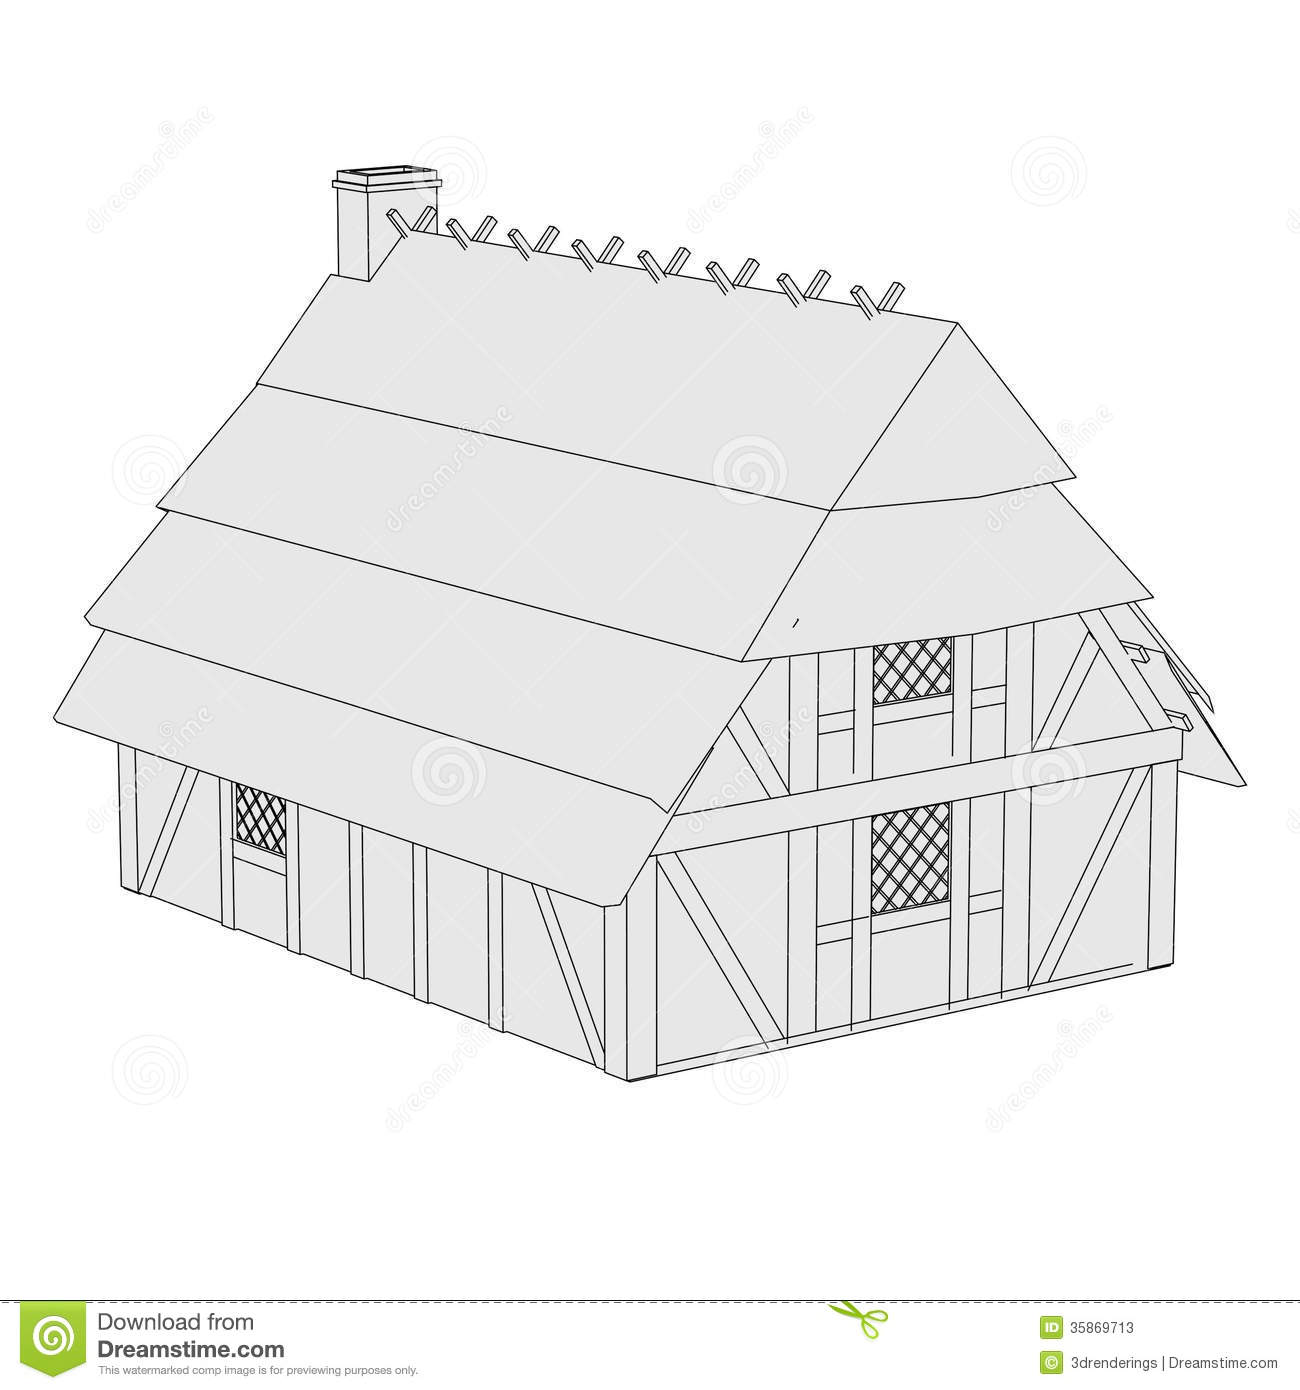 How To Draw House Plans Free